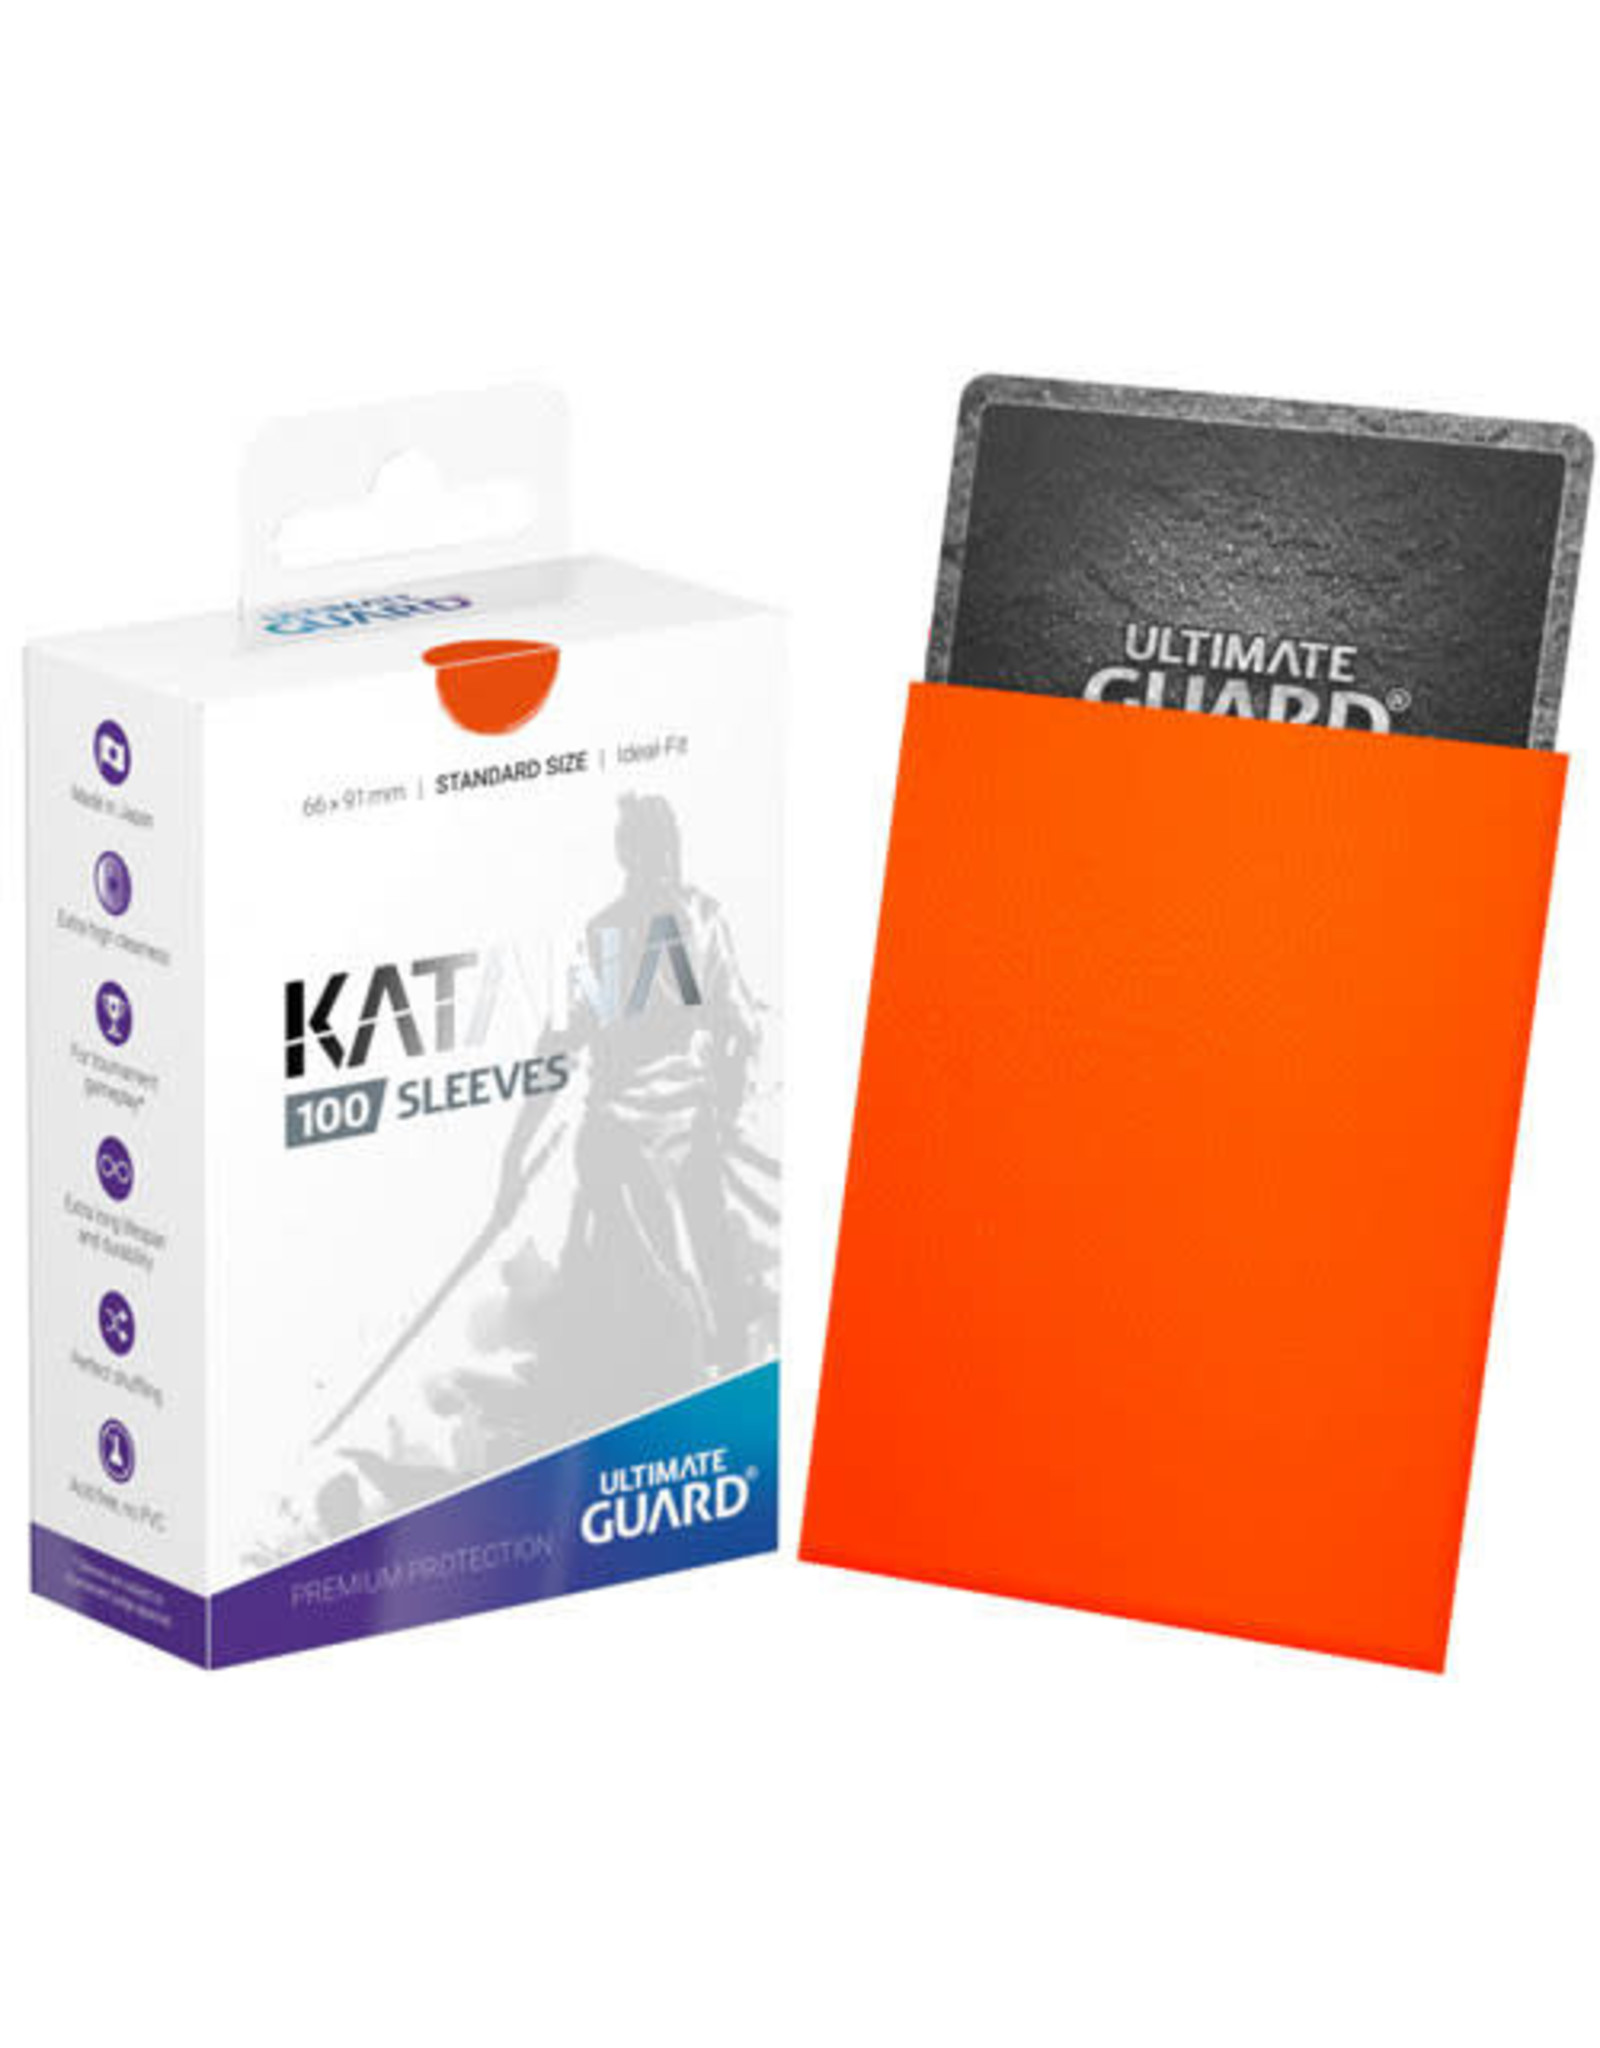 Ultimate Guard: Katana Card Sleeves